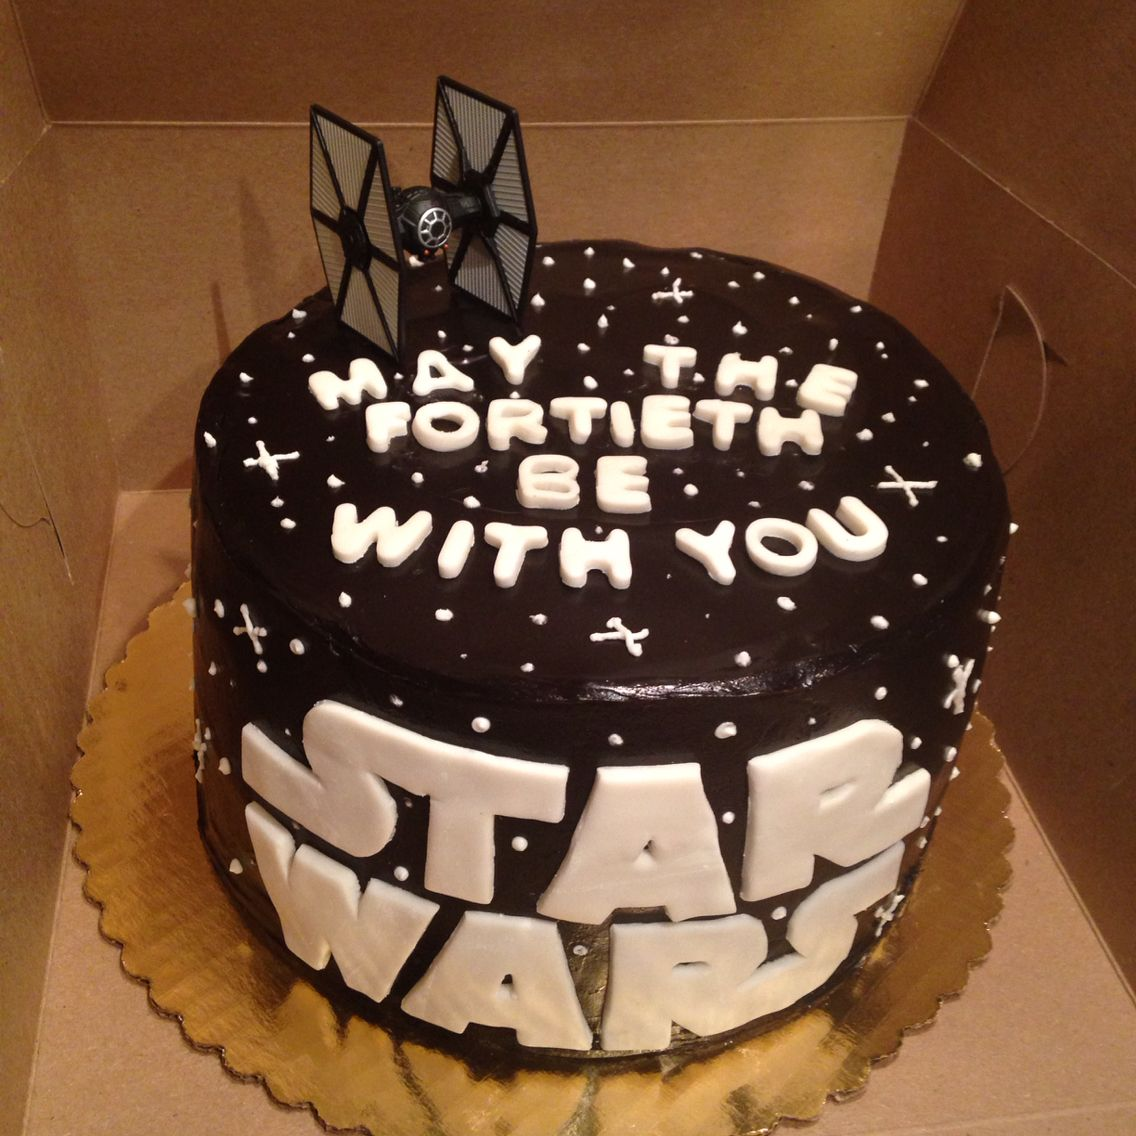 star wars fortieth birthday cake with dark chocolate. Black Bedroom Furniture Sets. Home Design Ideas